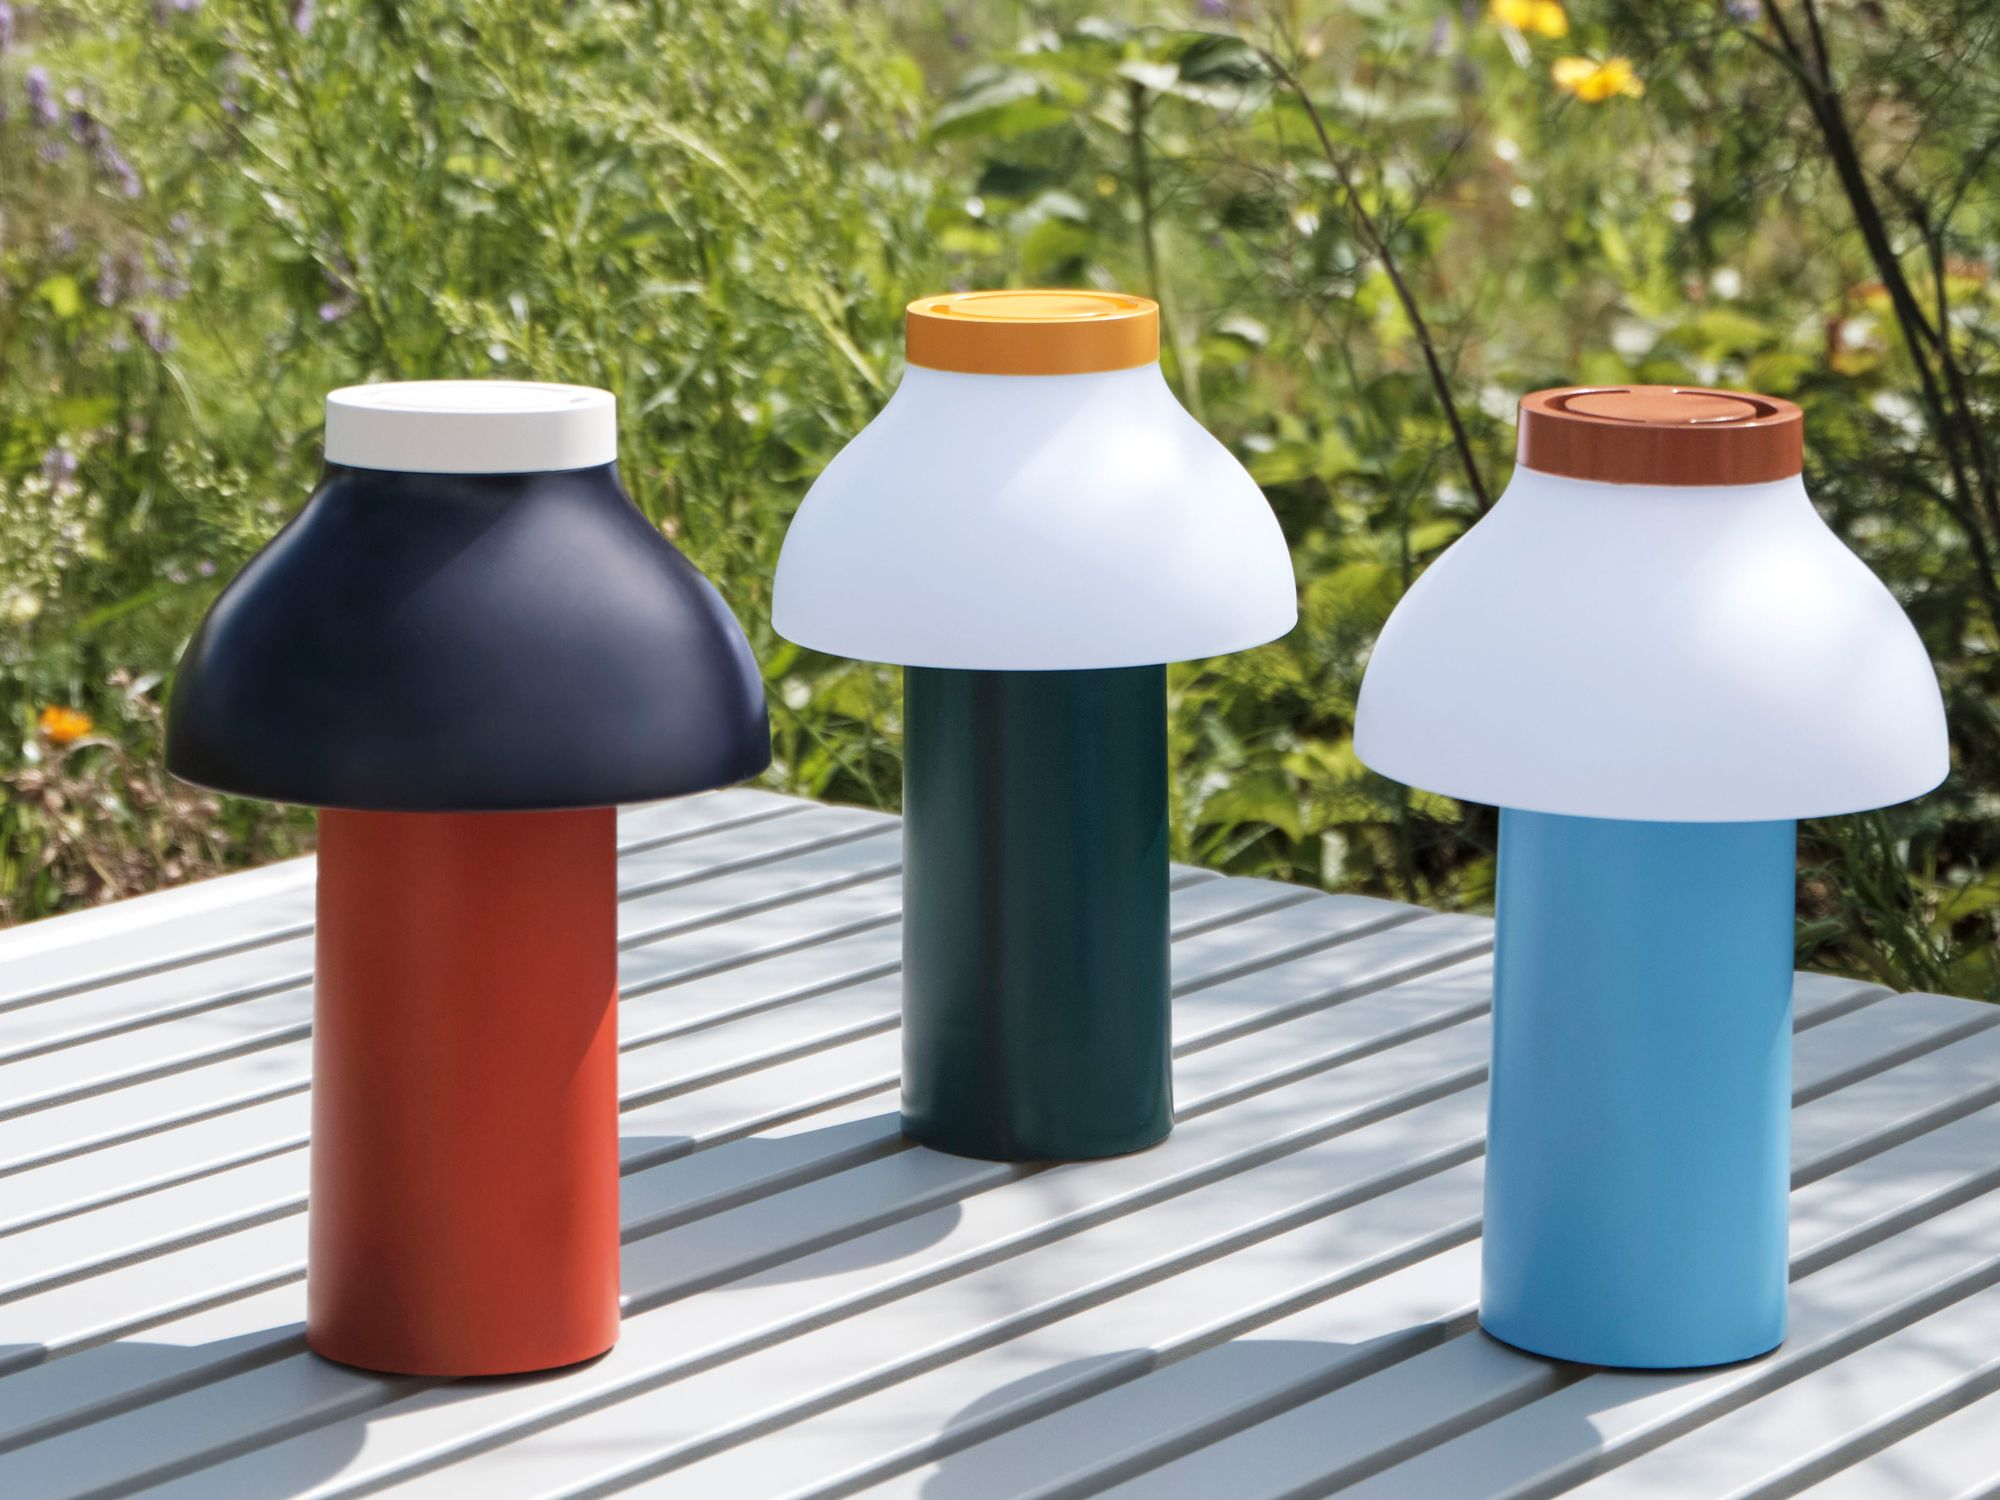 Hay PC portable lamps by Pierre Charpin, from hay.dk